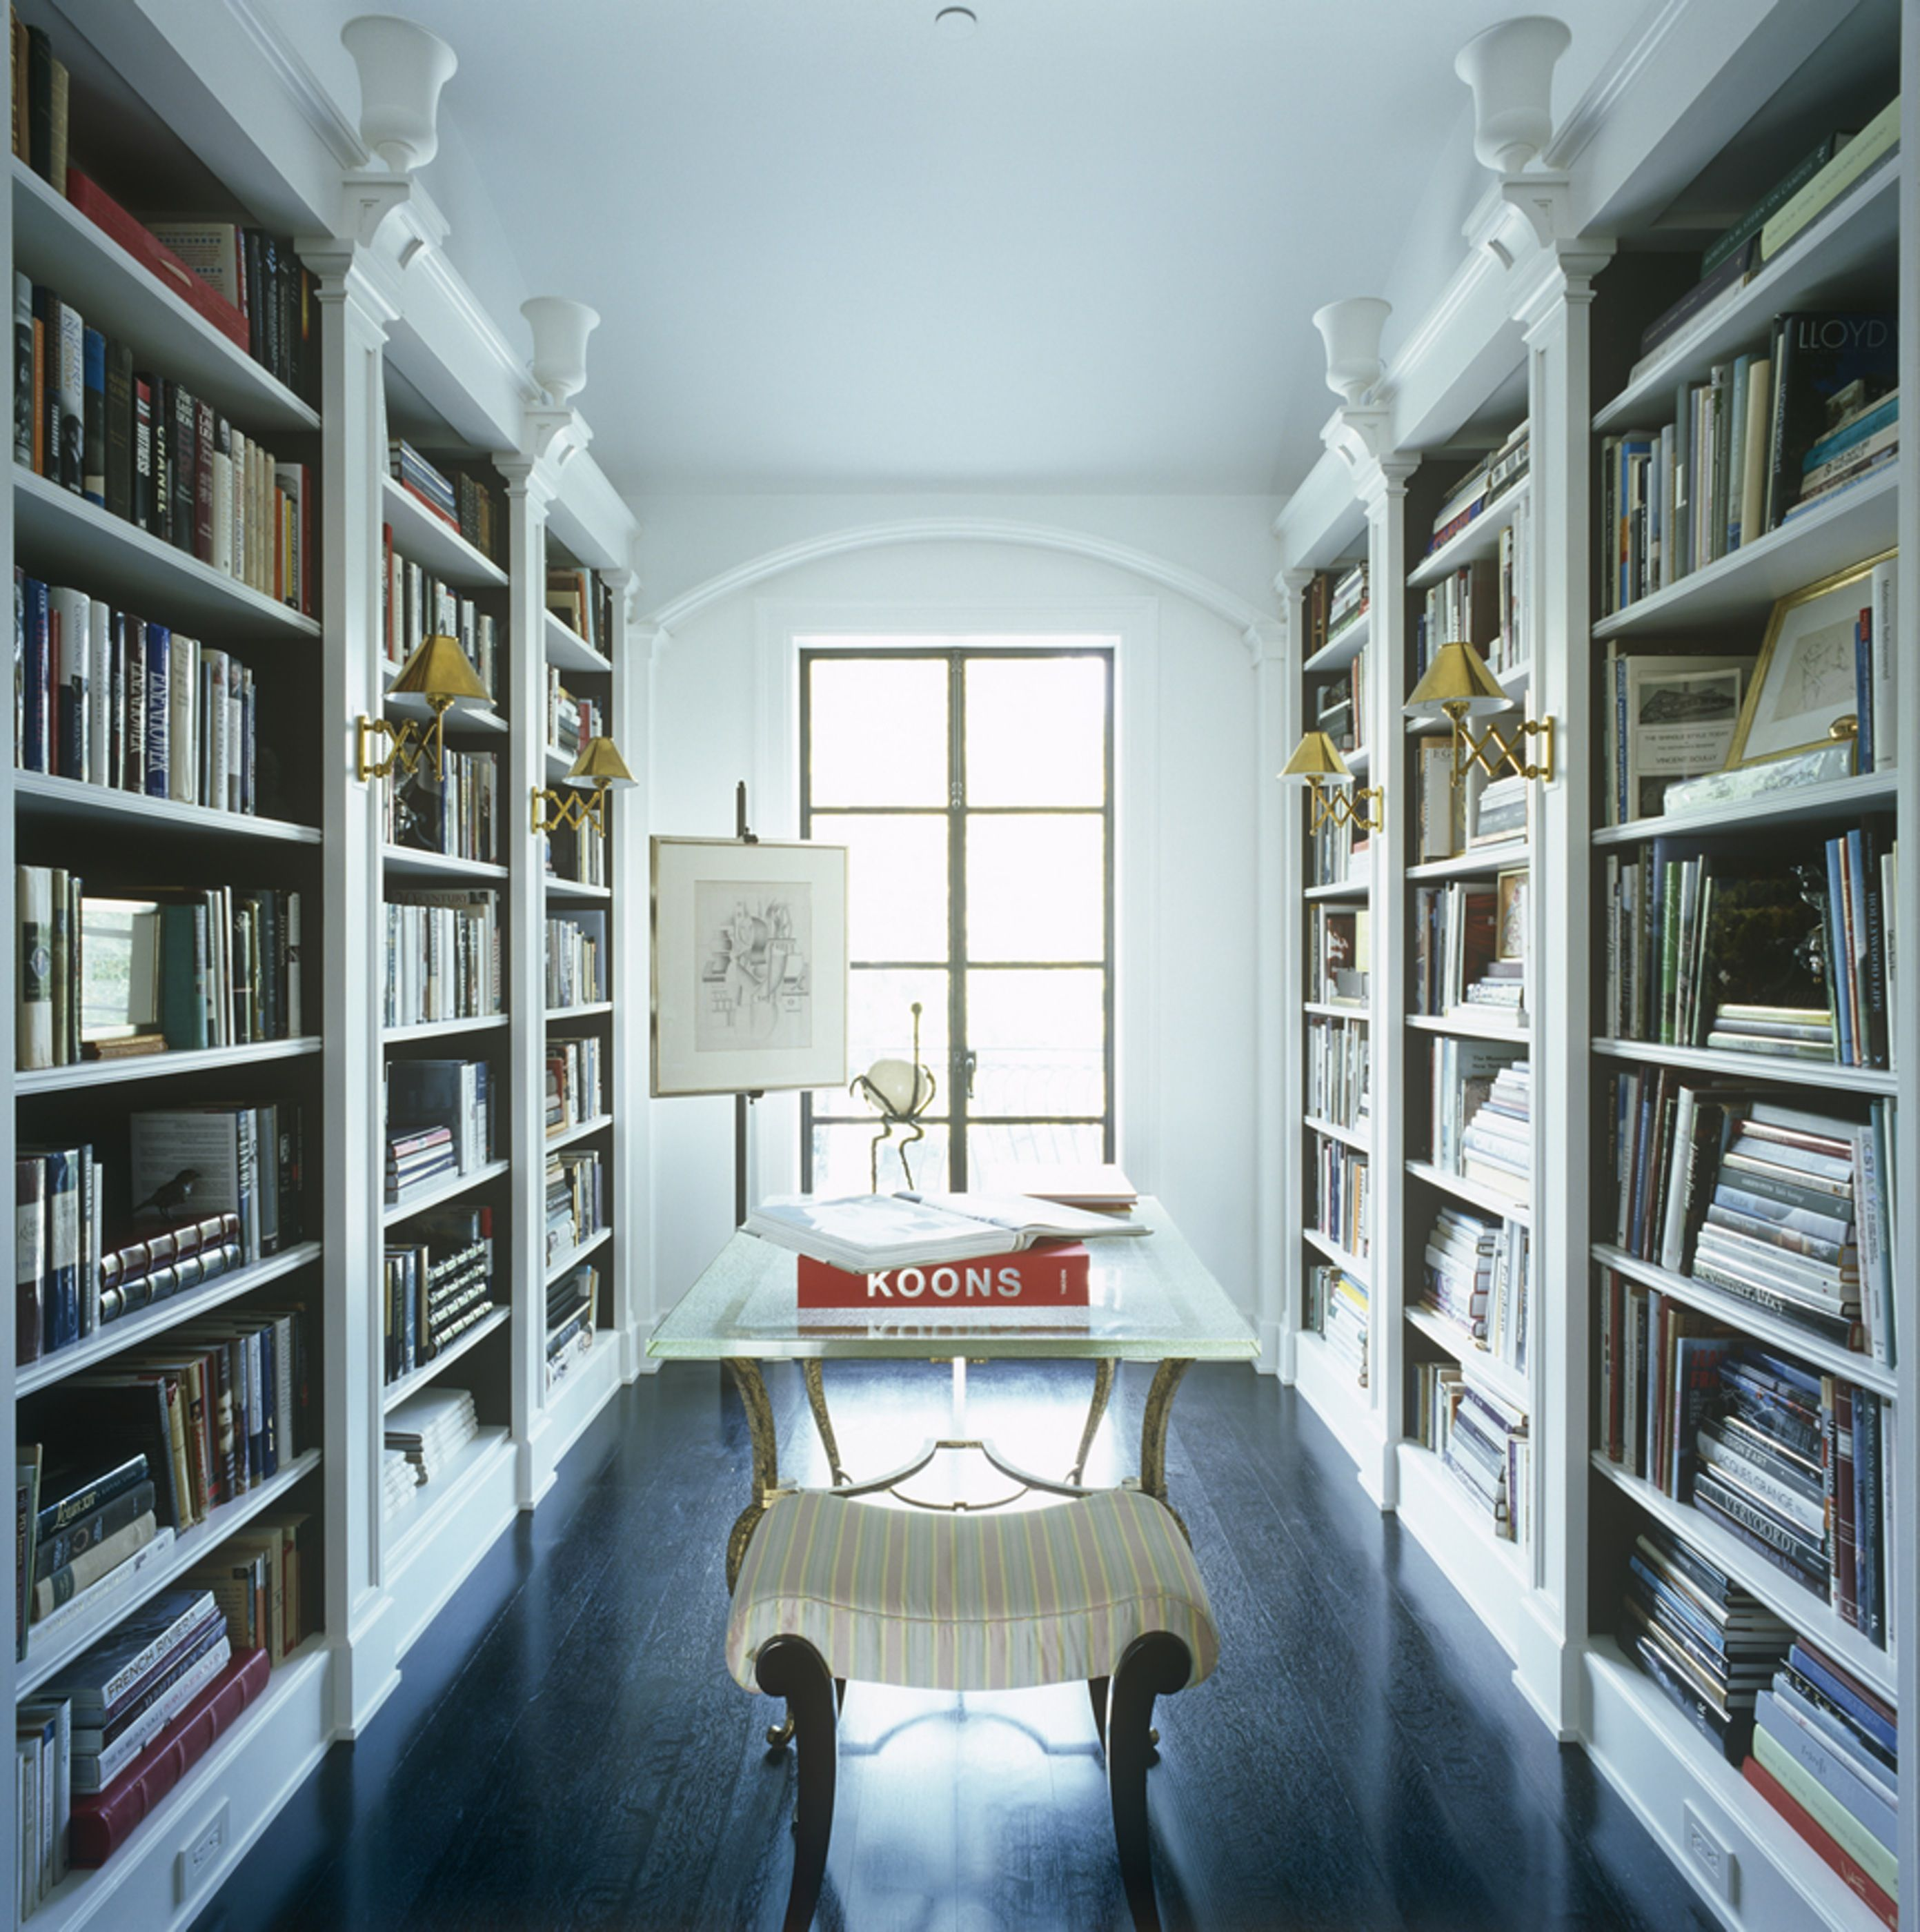 Brian j mccarthy library book private libraries pinterest